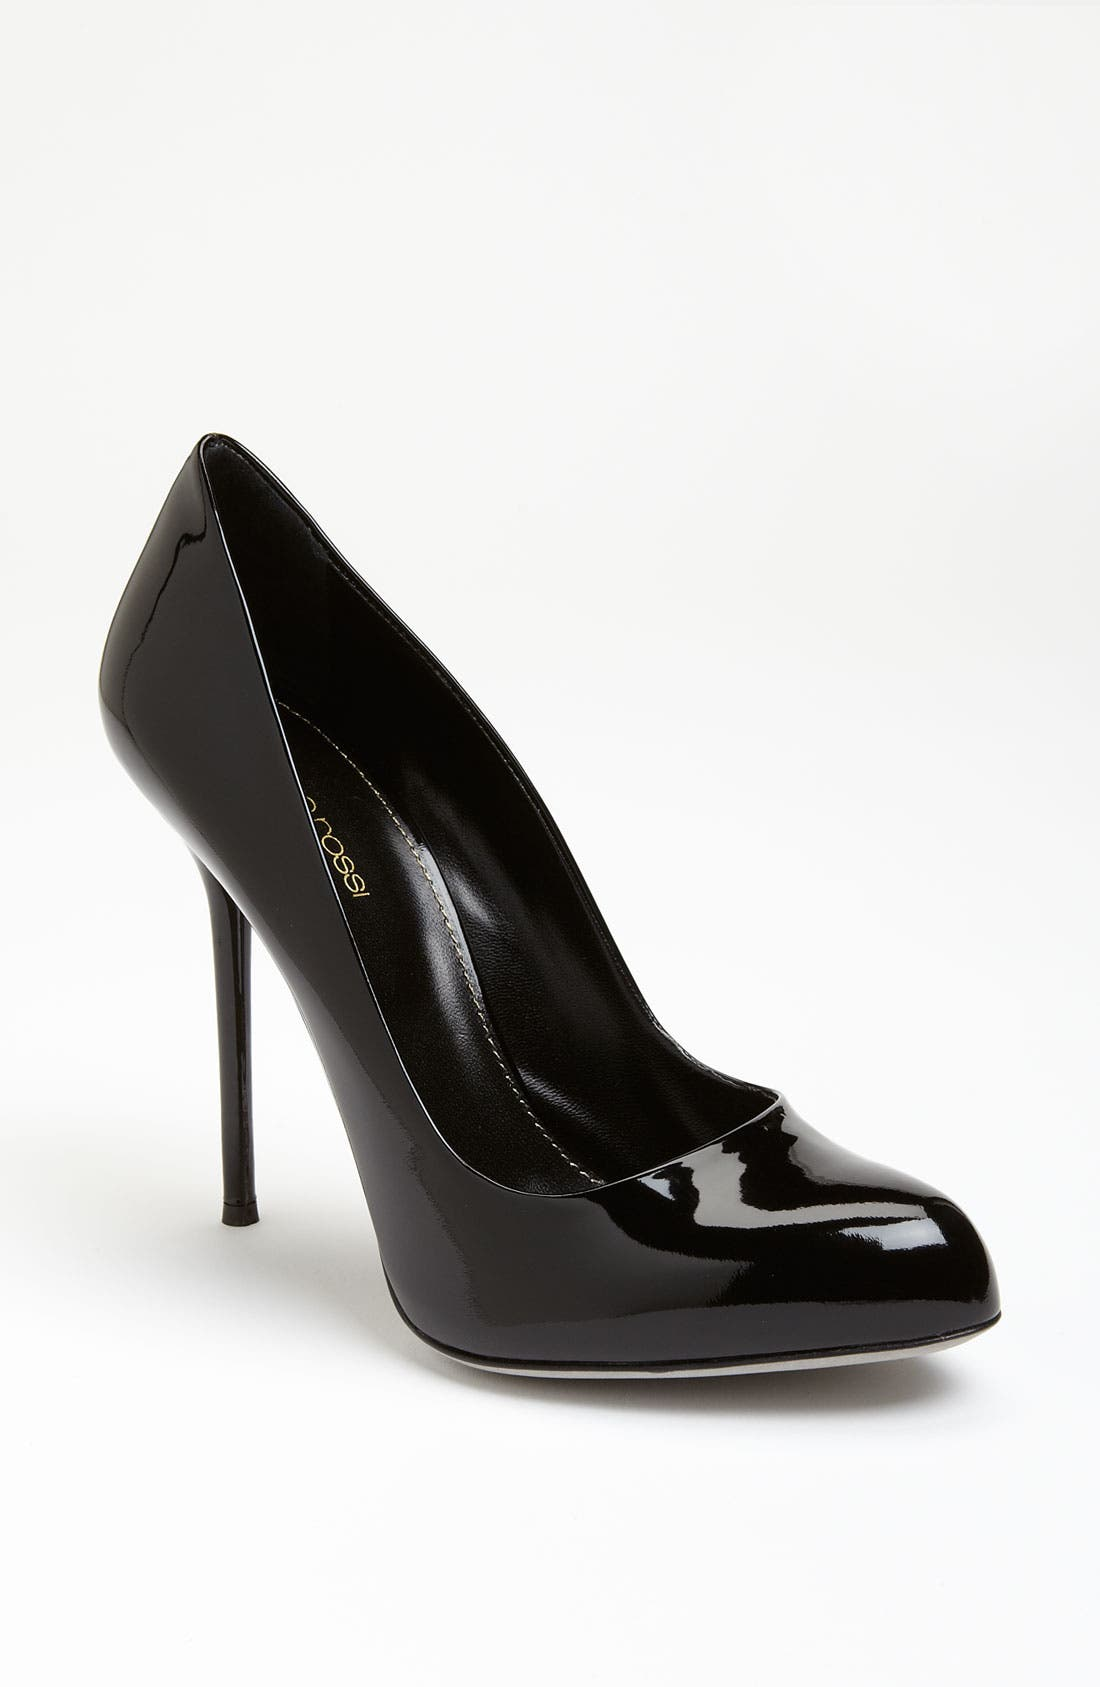 Alternate Image 1 Selected - Sergio Rossi Single Sole Pump